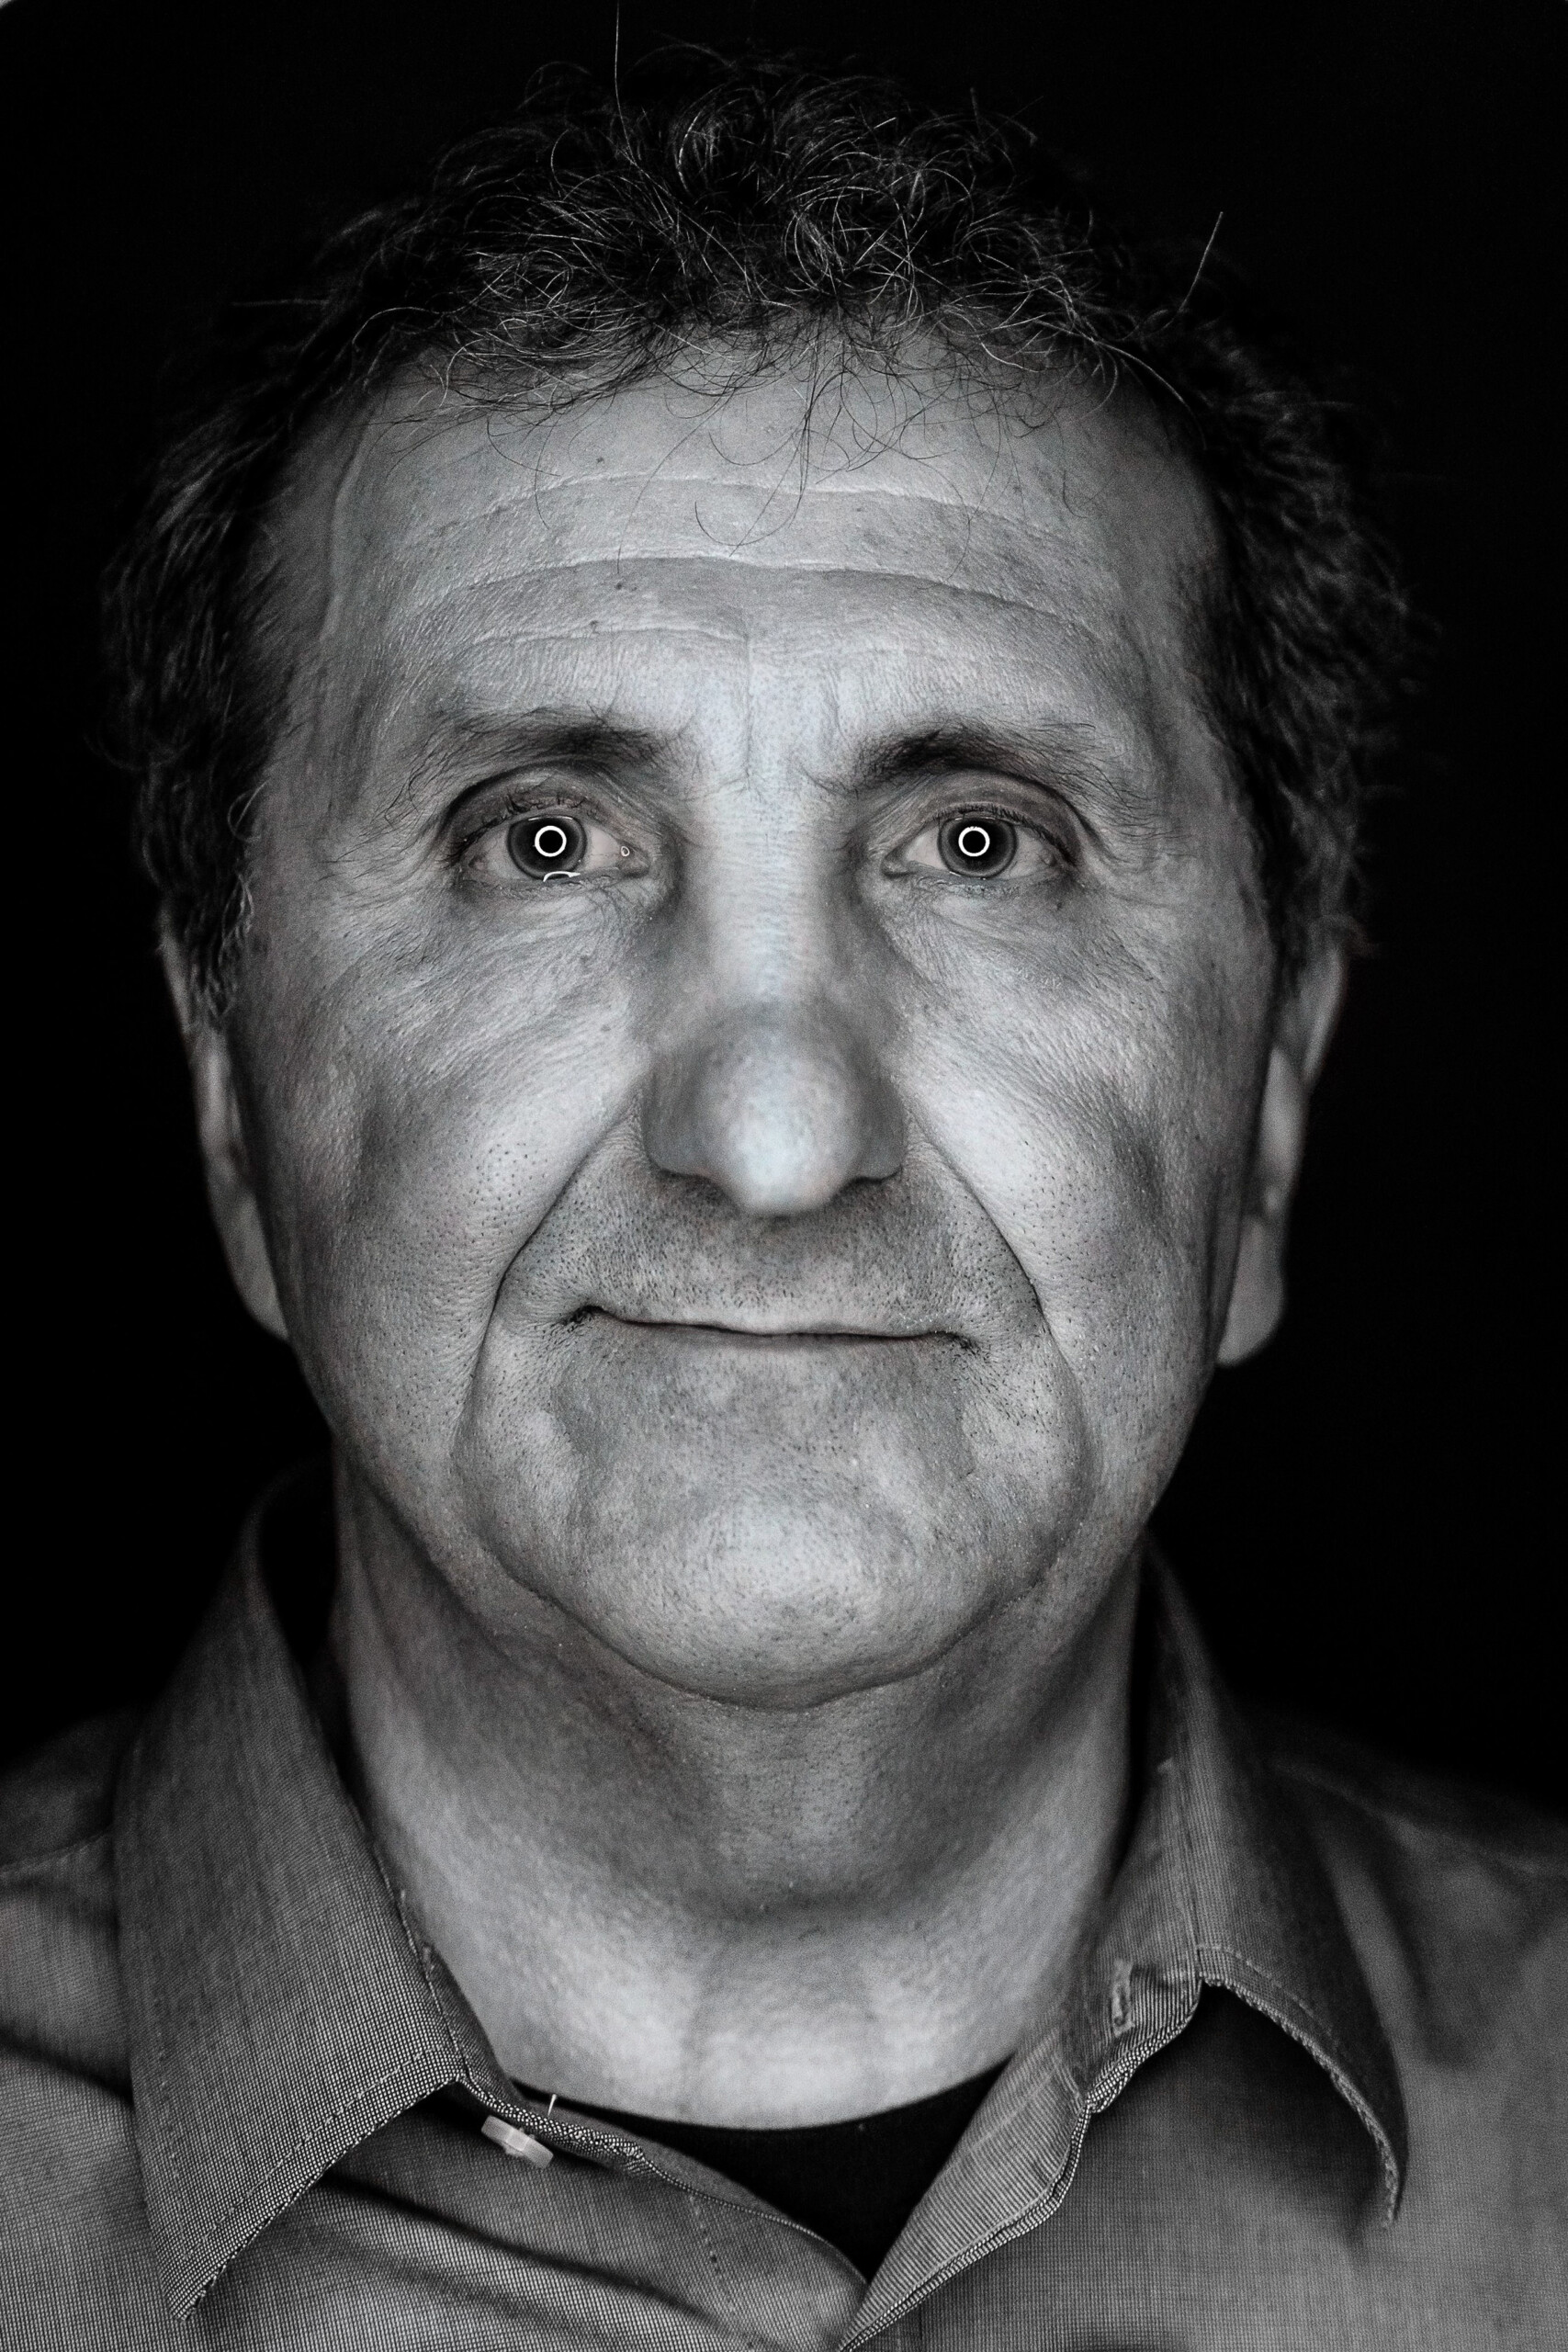 An Evening with #1 New York Times Best Selling Author/Photographer Pete Souza